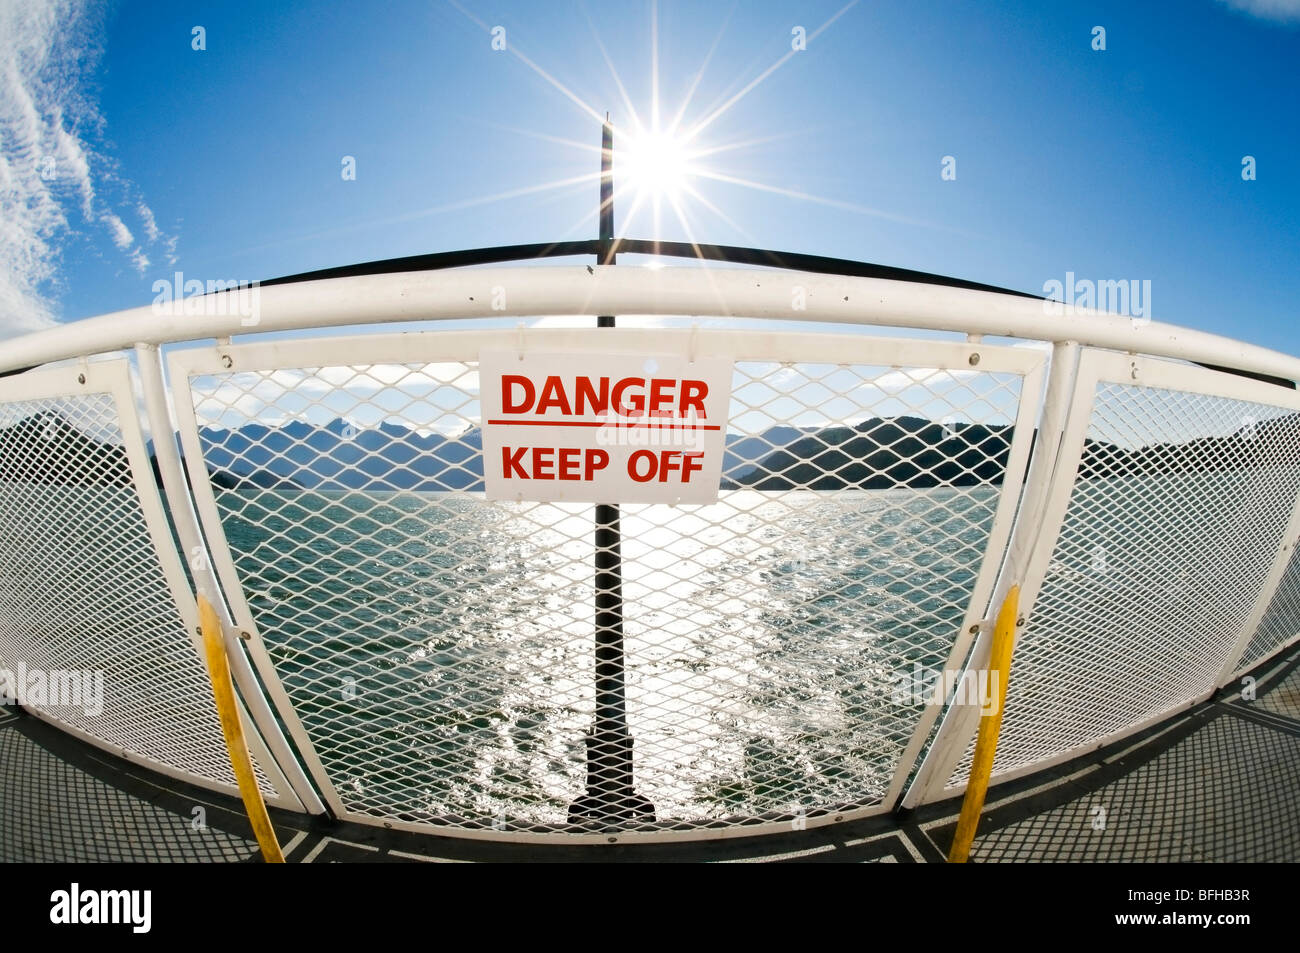 A sign on a ferry railing states 'Danger - Keep Off'. - Stock Image